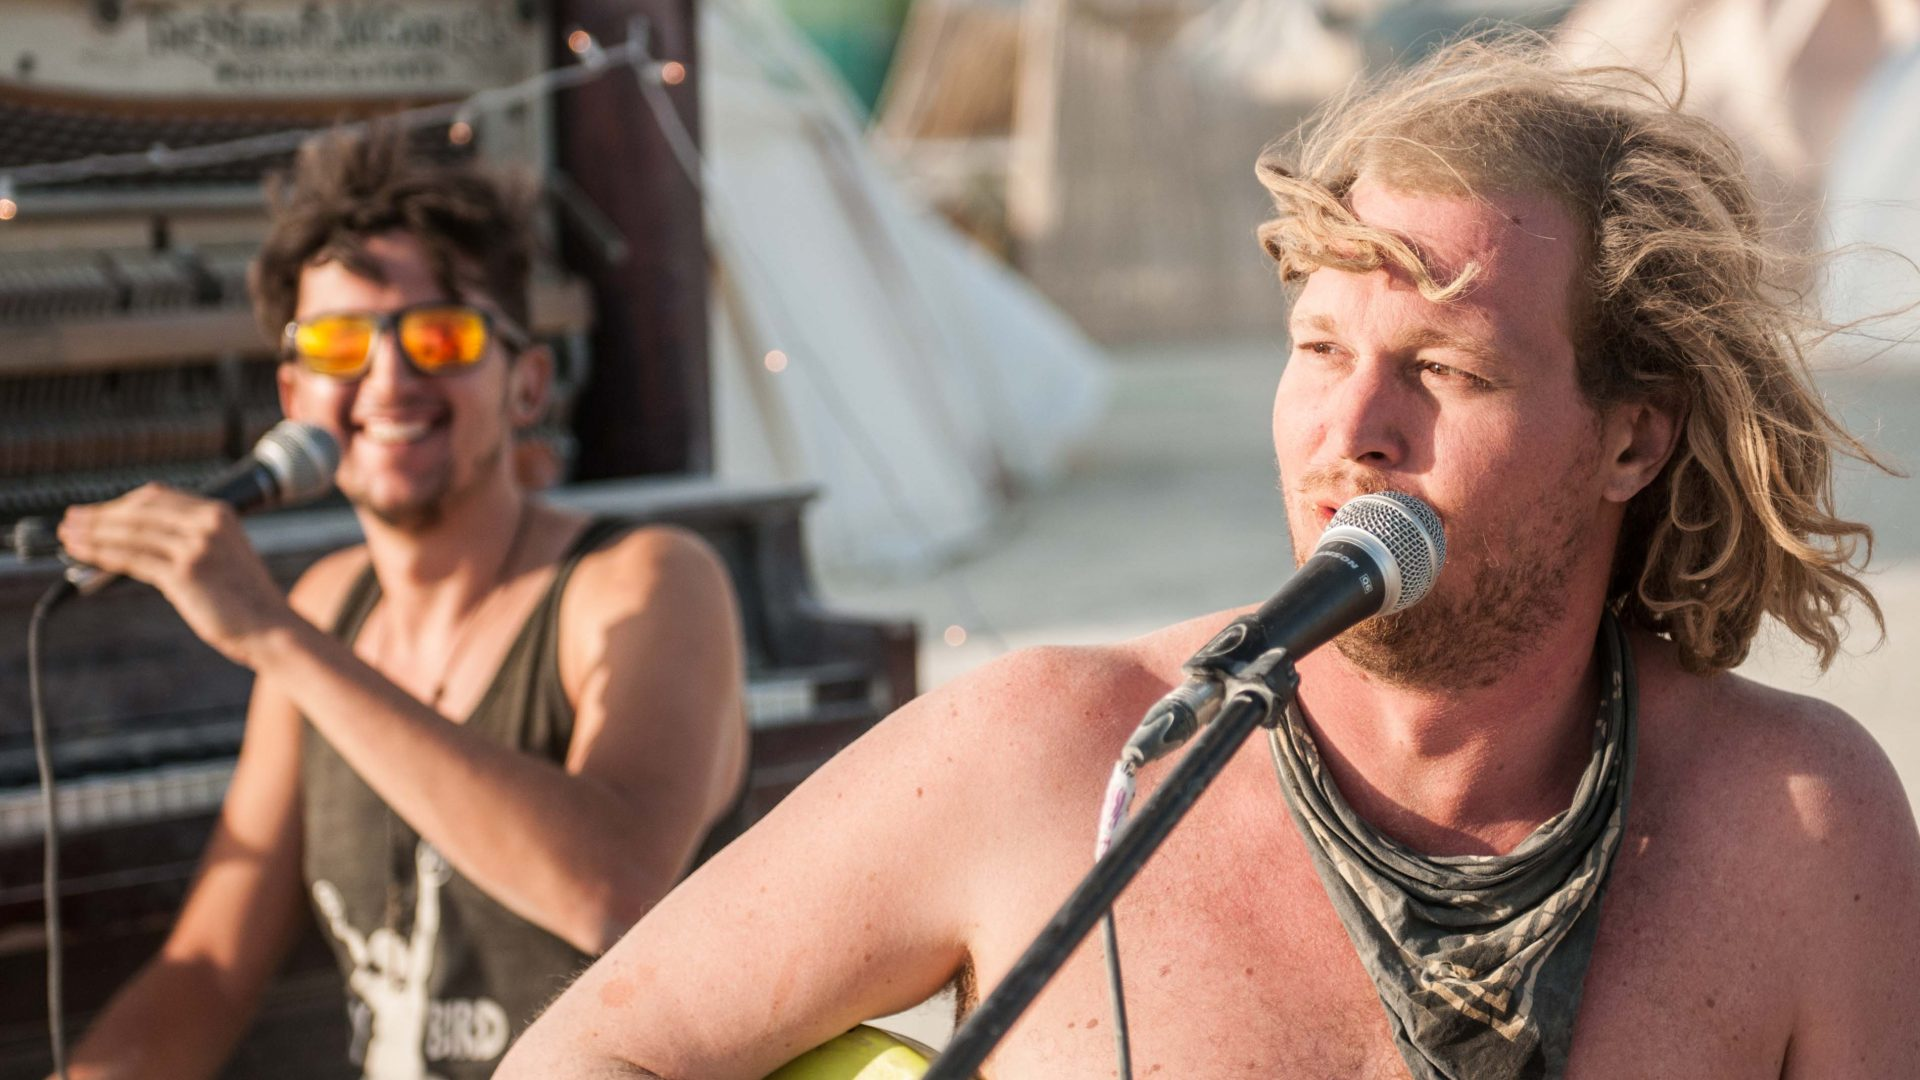 A couple of guys perform for whoever cares to listen at Burning Man.